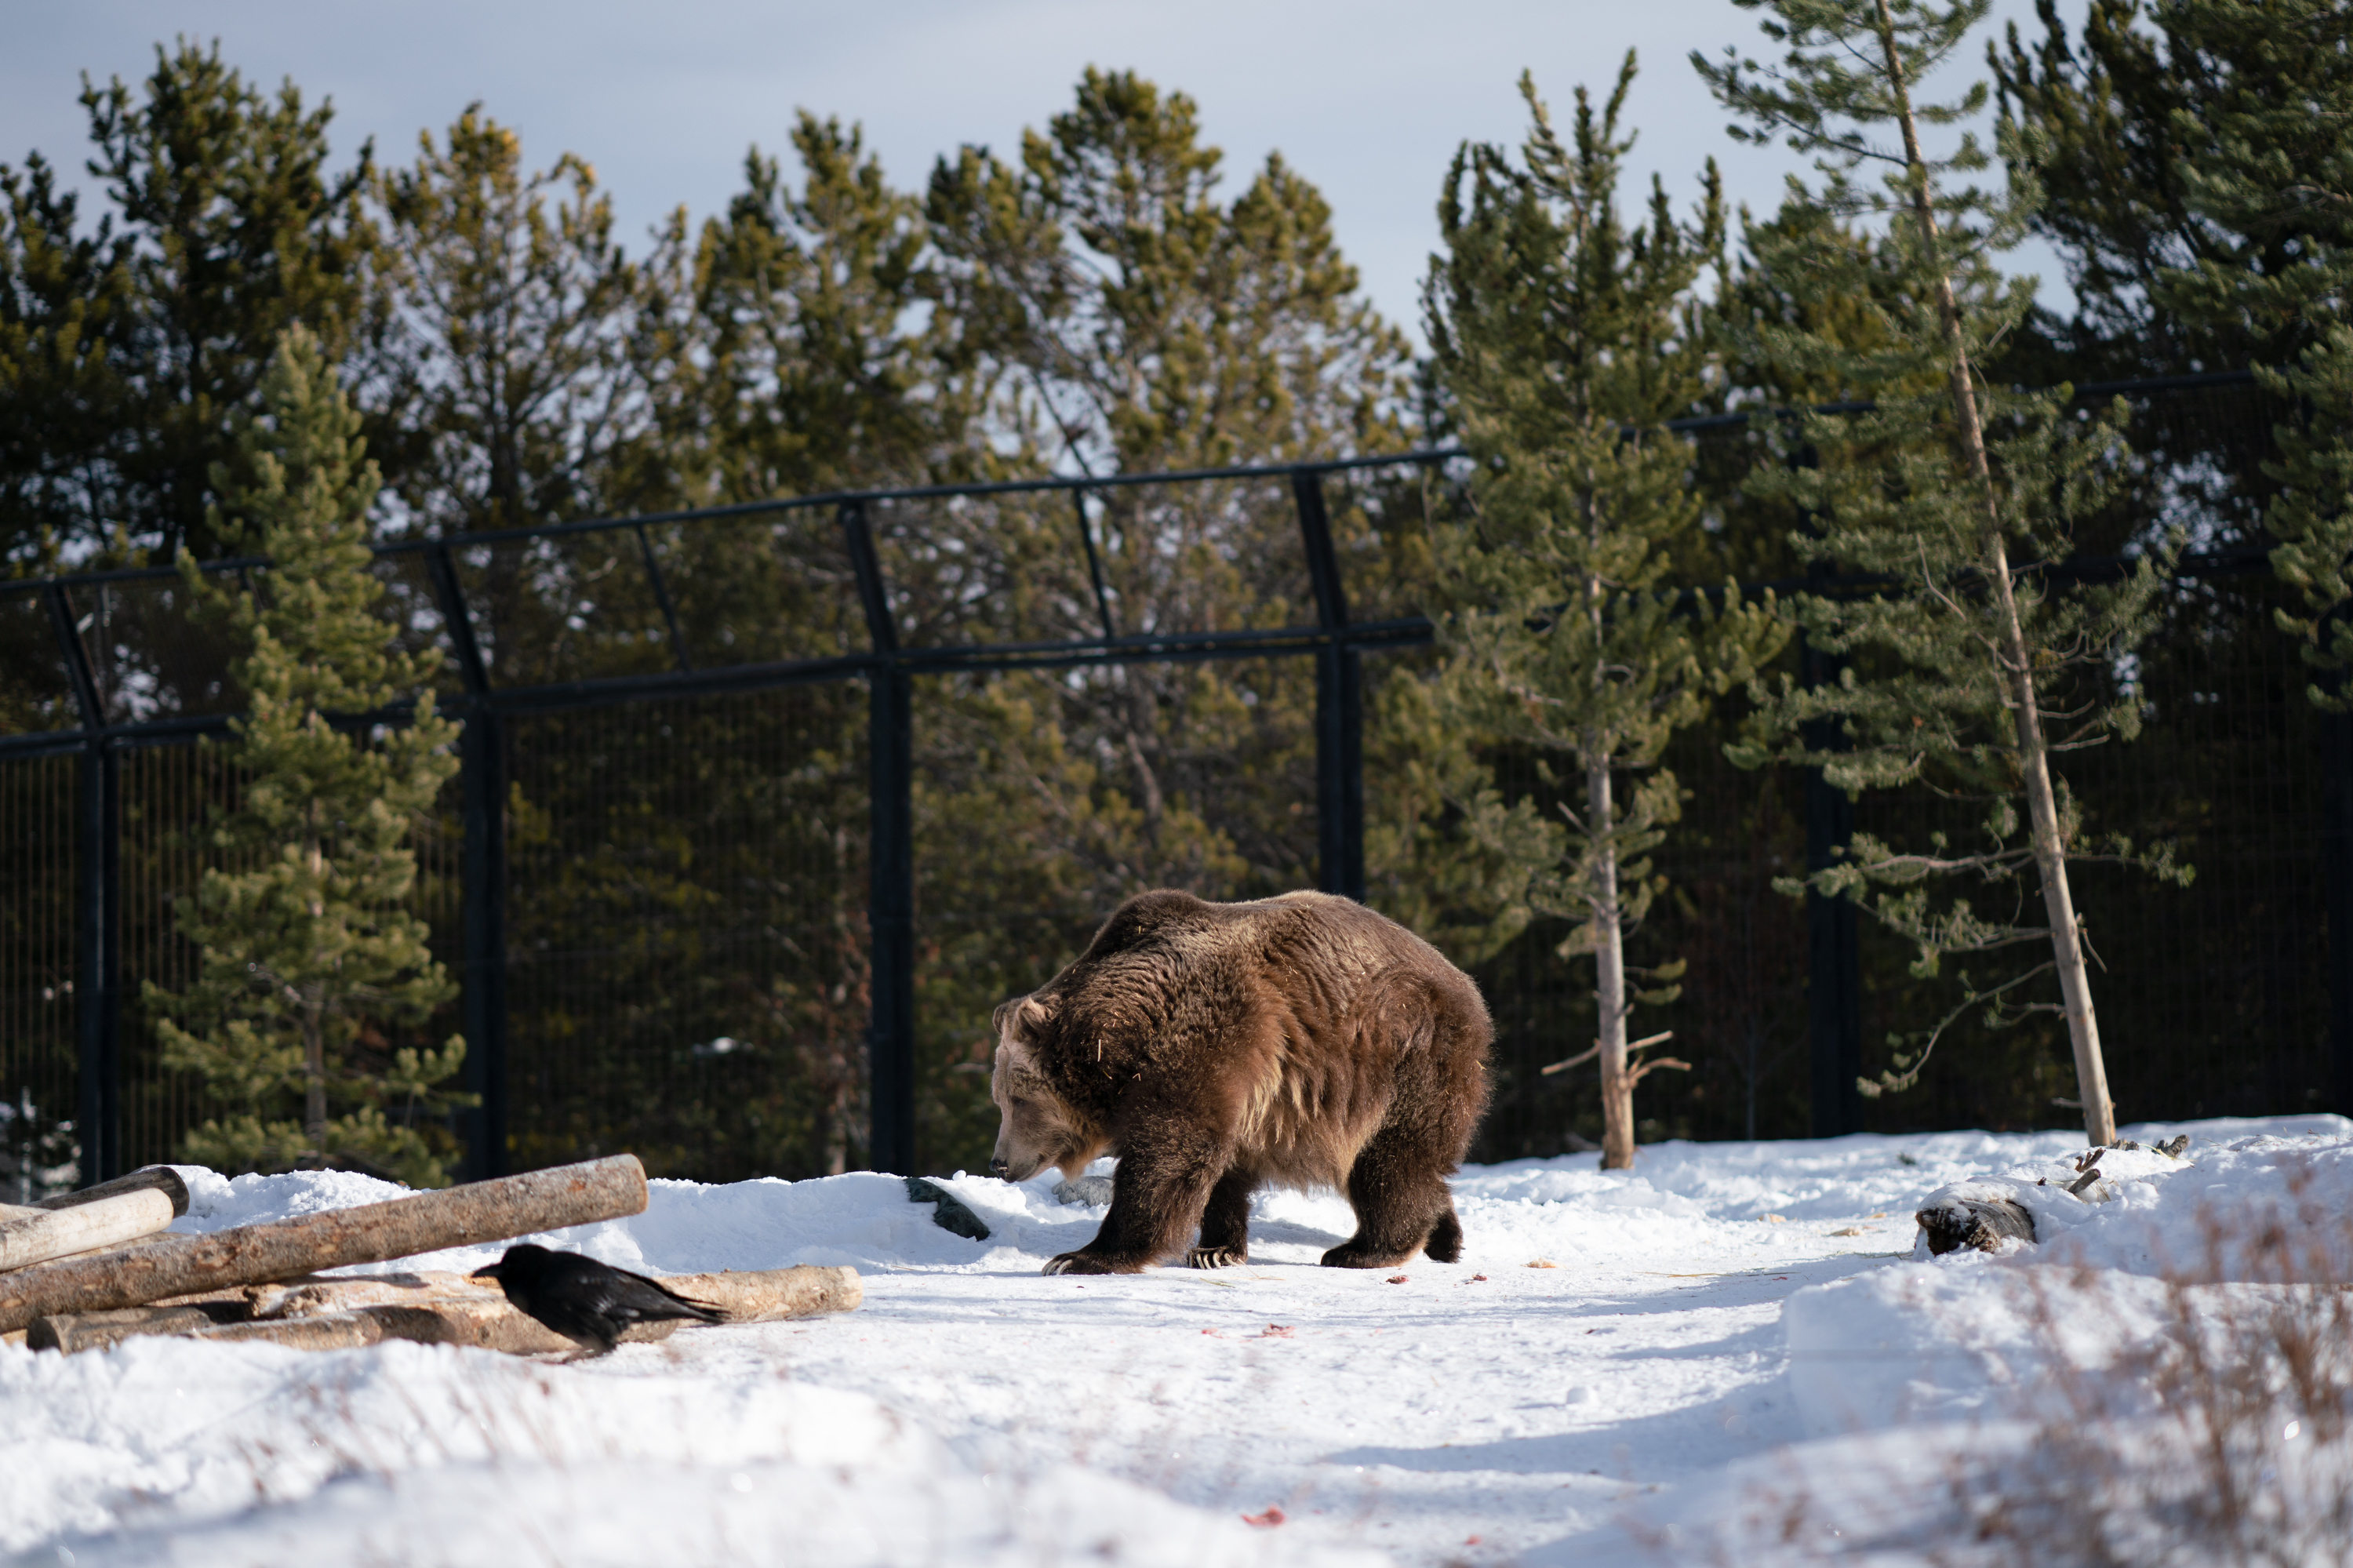 The U.S. Fish and Wildlife Service believes the Yellowstone-area grizzly bears have been recovered for more than decade.